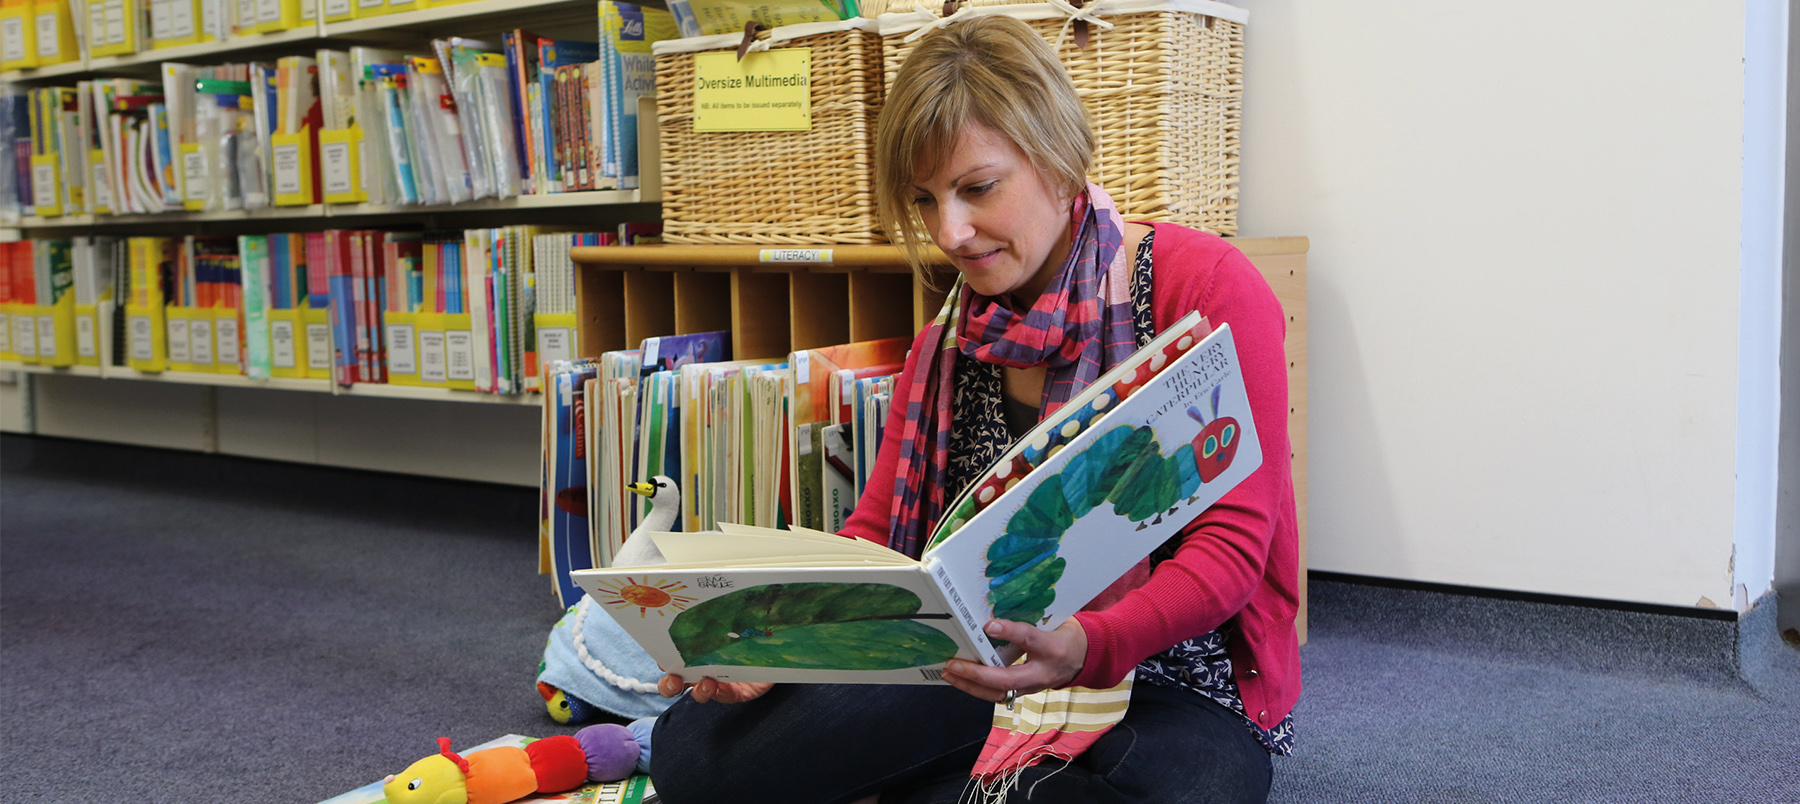 Student sat in school resources section of library reading a children's book